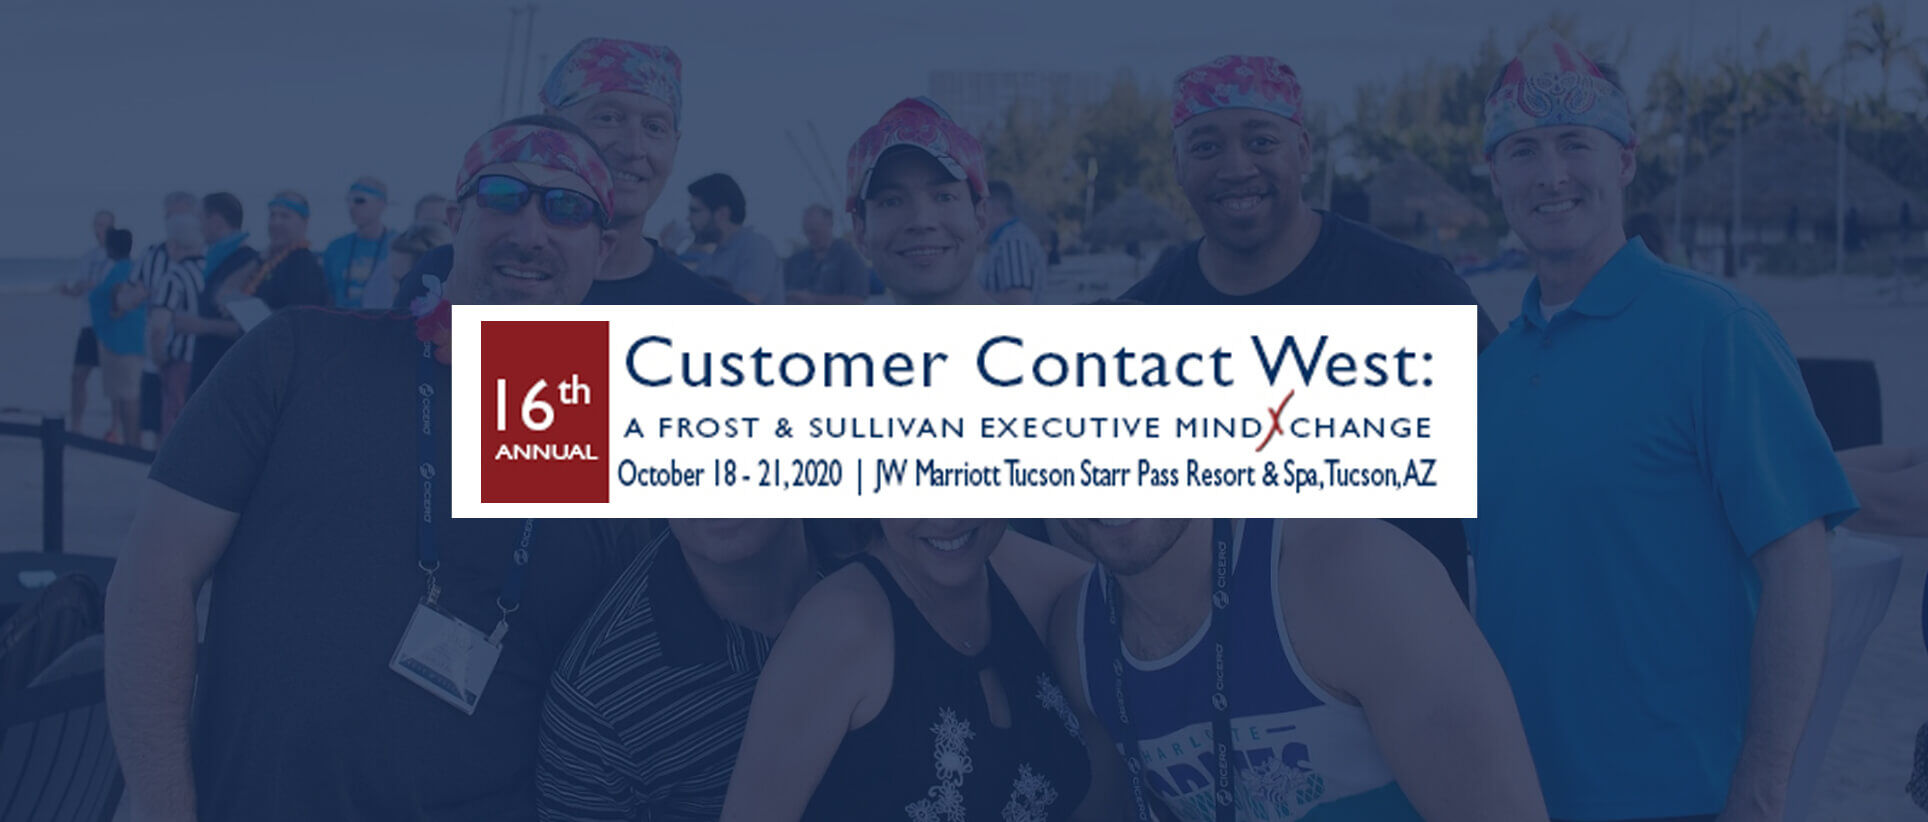 Customer Contact West Logo